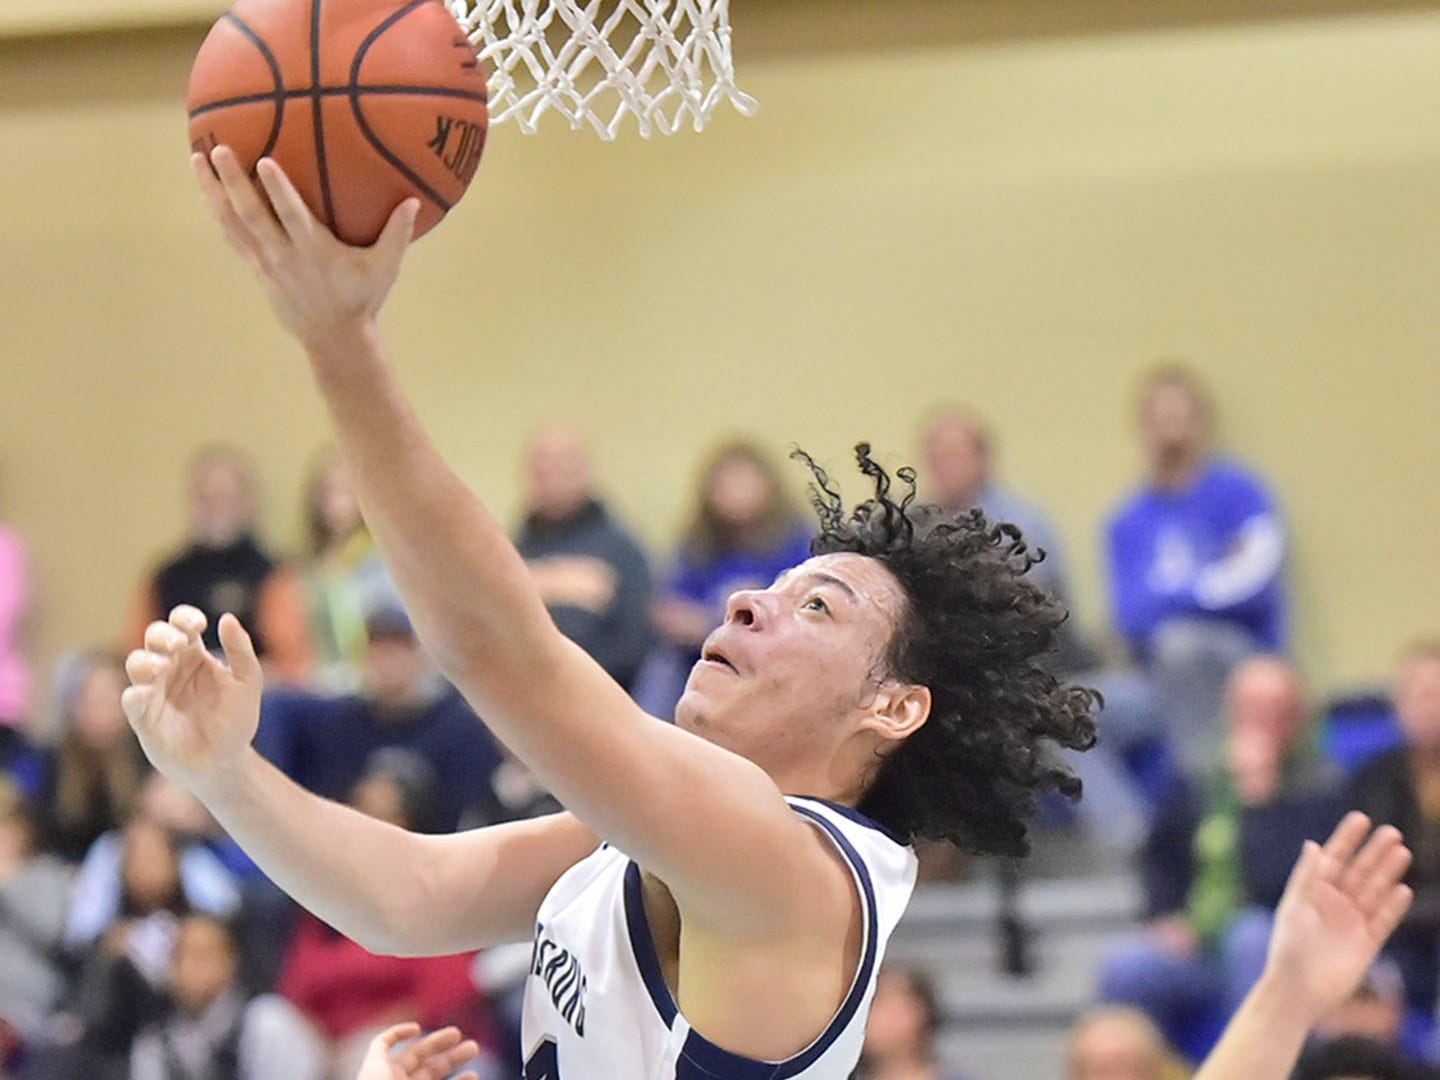 Chambersburg's Ty Holsopple does a reverse layup against Waynesboro. Chambersburg lost Waynesboro 42-39 during the finals at Franklin County Tip-Off Tournament, Saturday, Dec. 8, 2018.